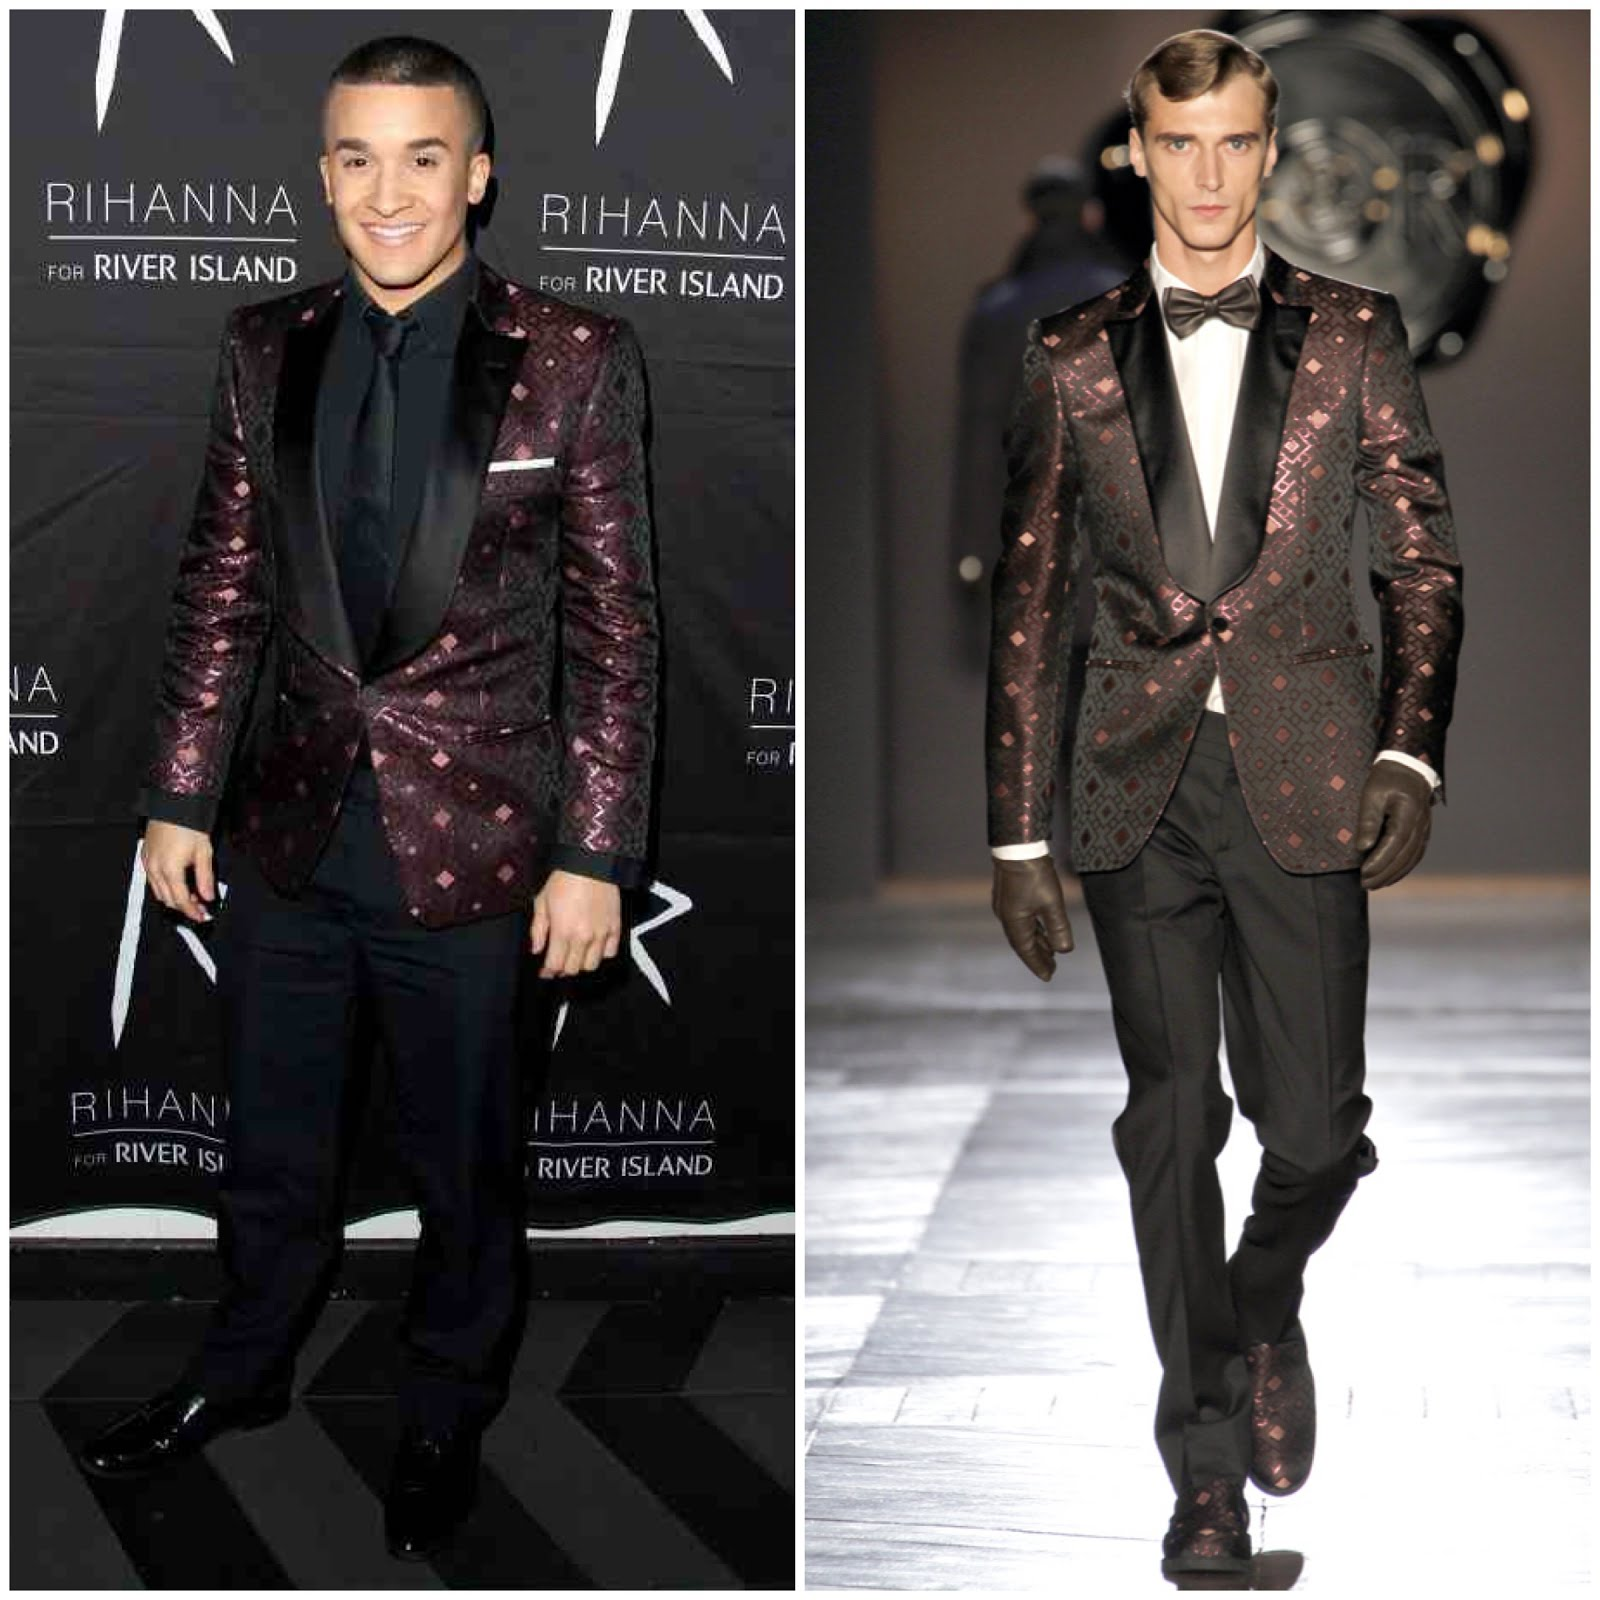 00O00 Menswear Blog Jahmene Douglas in Viktor &amp; Rolf - Rihanna for River Island after party